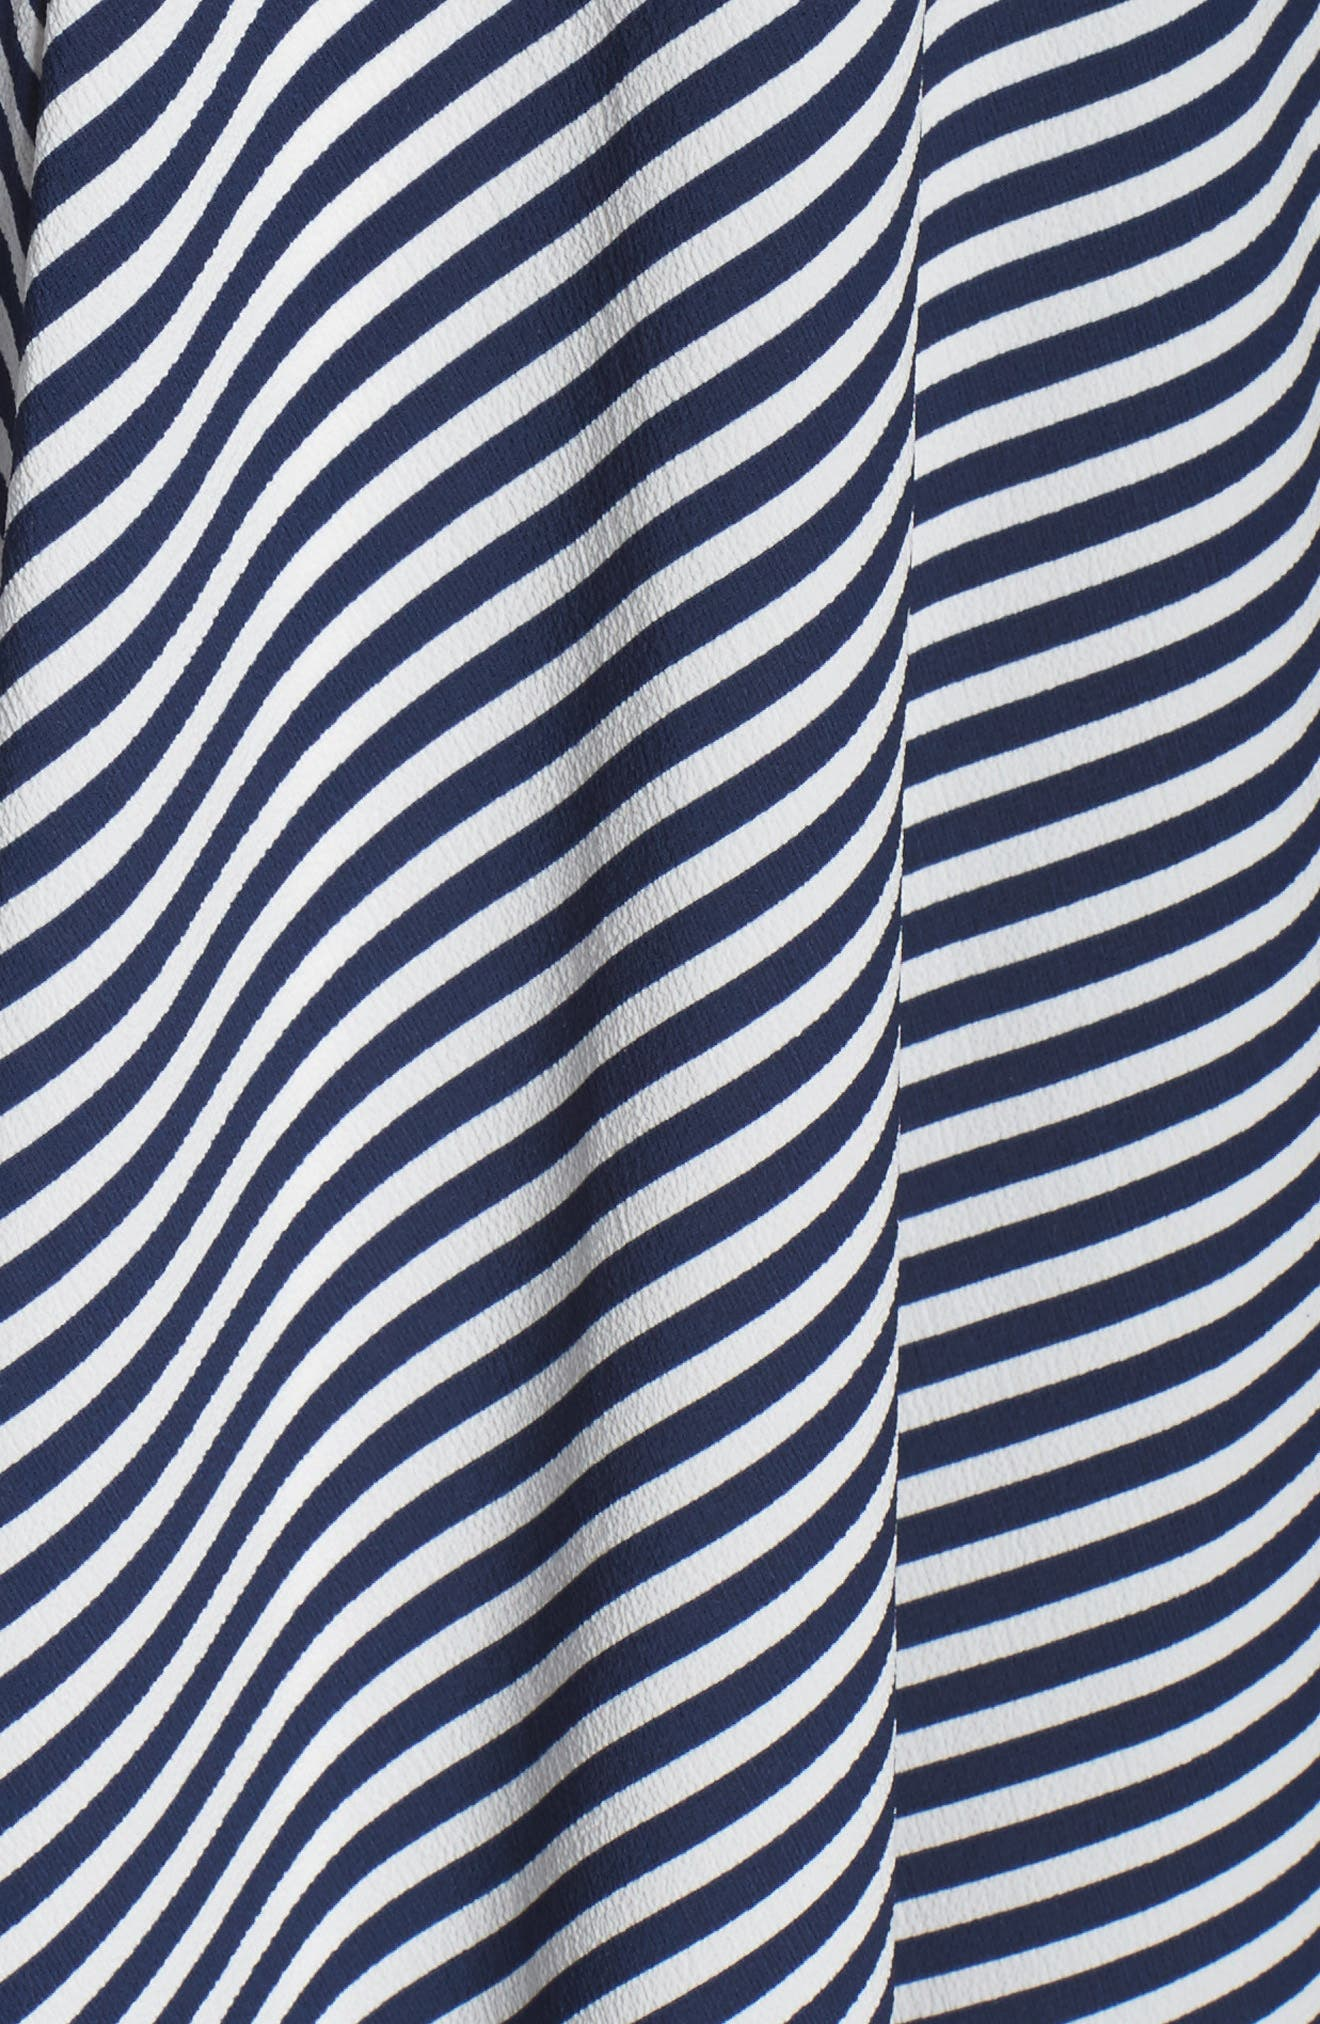 Stripe Midi Sundress,                             Alternate thumbnail 5, color,                             Navy/ Cream